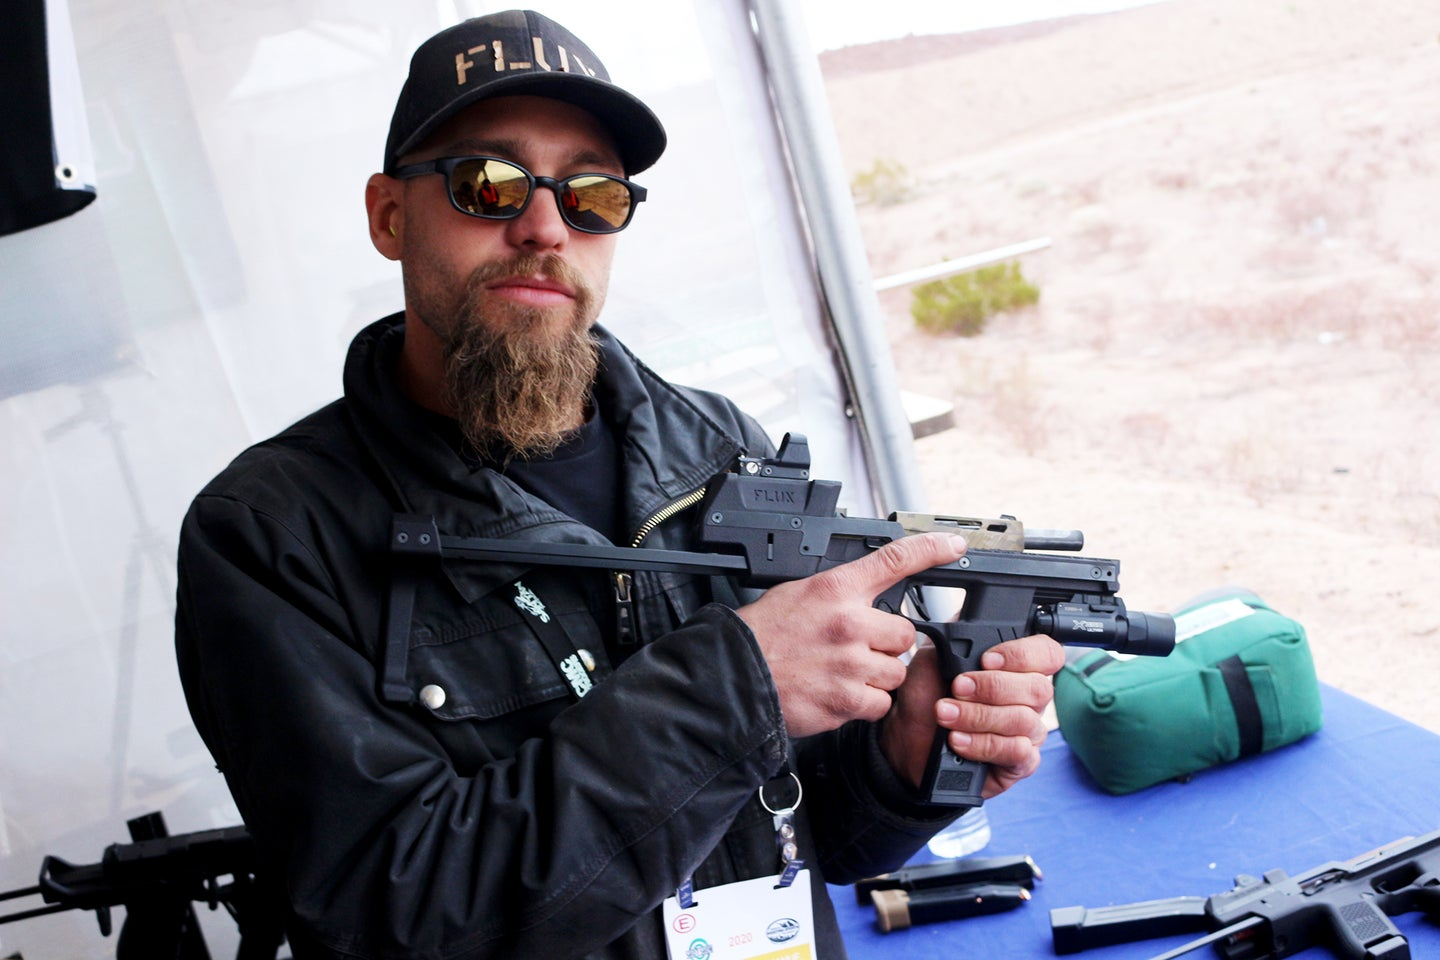 FLUX MP17 for the SIG M17